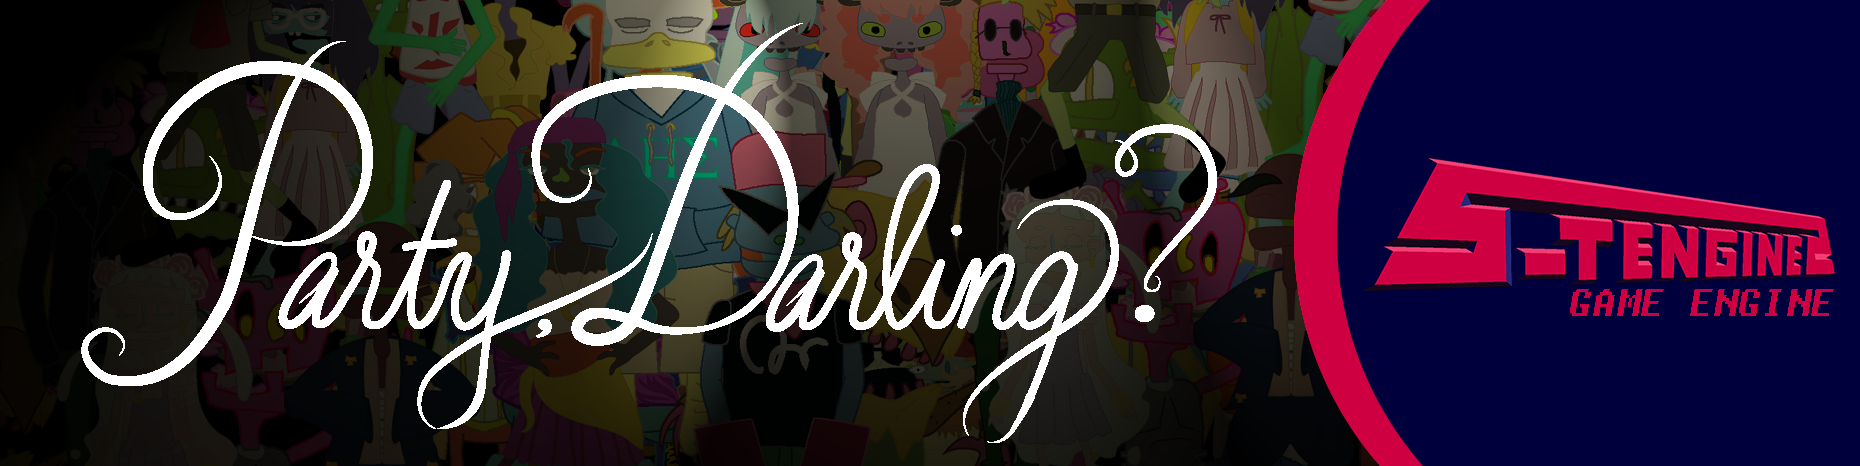 Party, Darling?